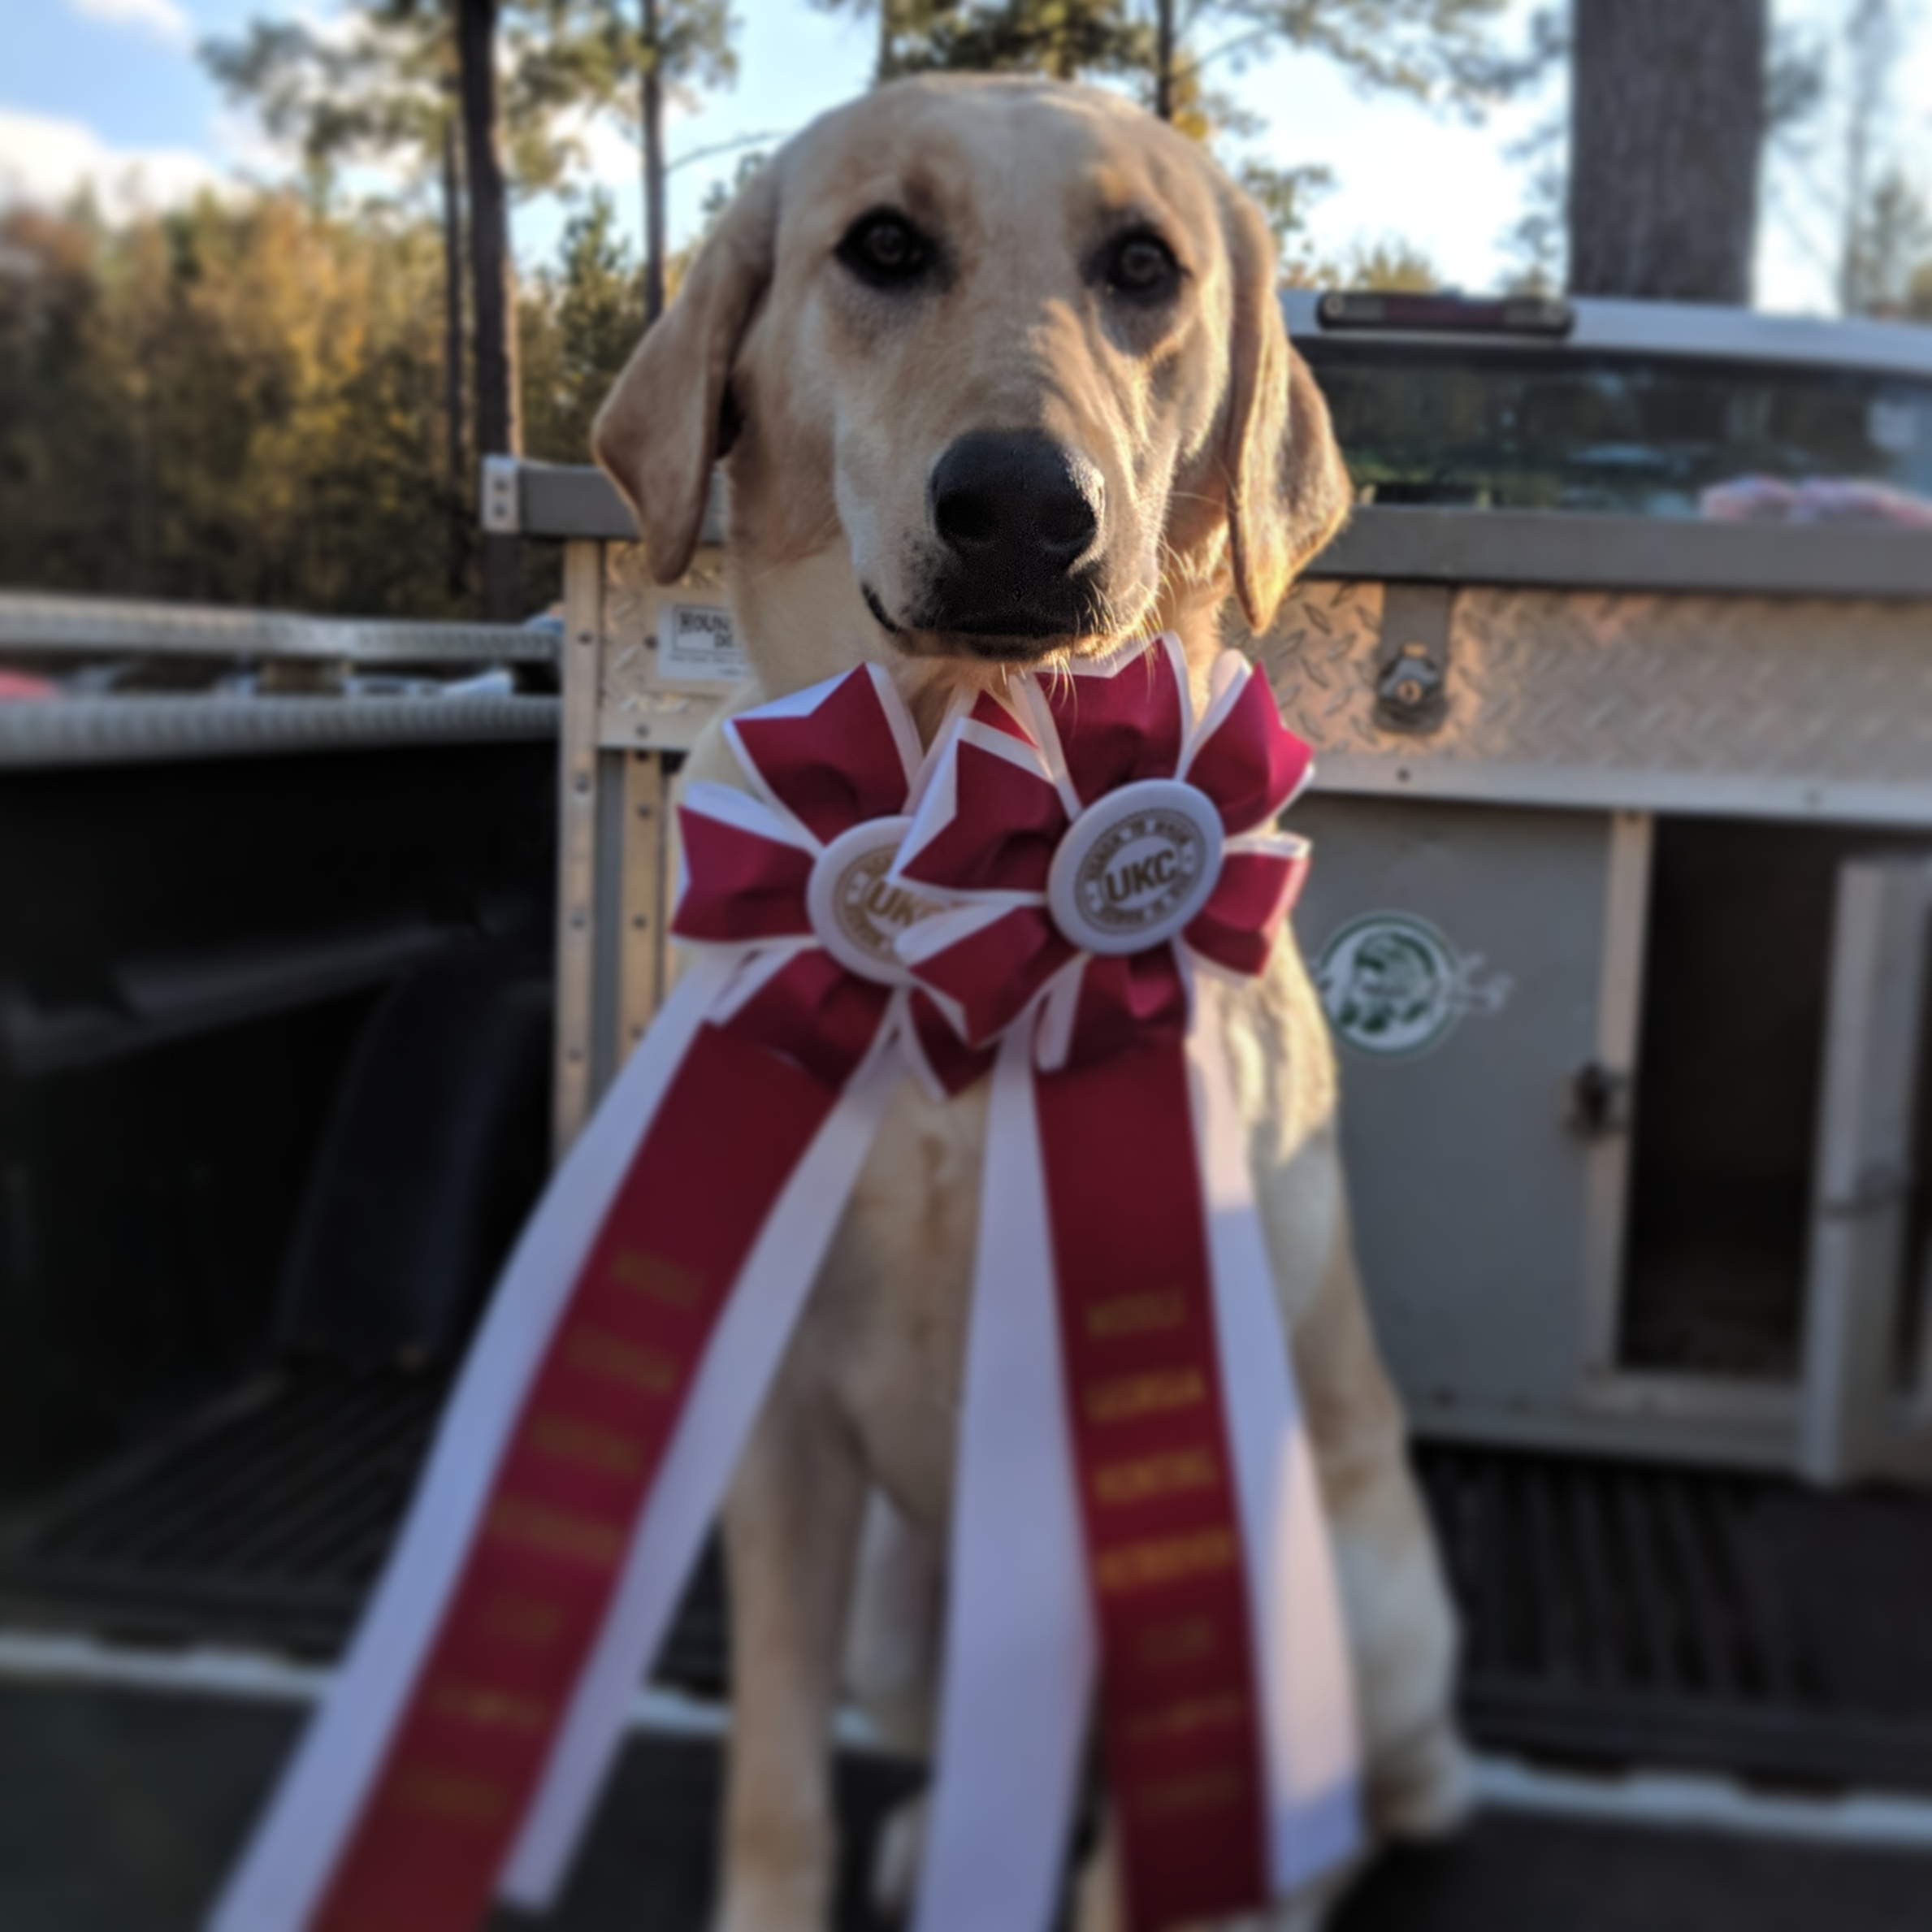 Big Indian's Maggie May - Excited to work with Maggie in our gundog training program. She earned her 2 ribbons in the HRC Started test in Dublin on Nov. 17,18, 2018. This was Maggie's first test, and she knocked it out of the park. Happy for her owner Brandon Doles and look forward to getting her title in the Spring.